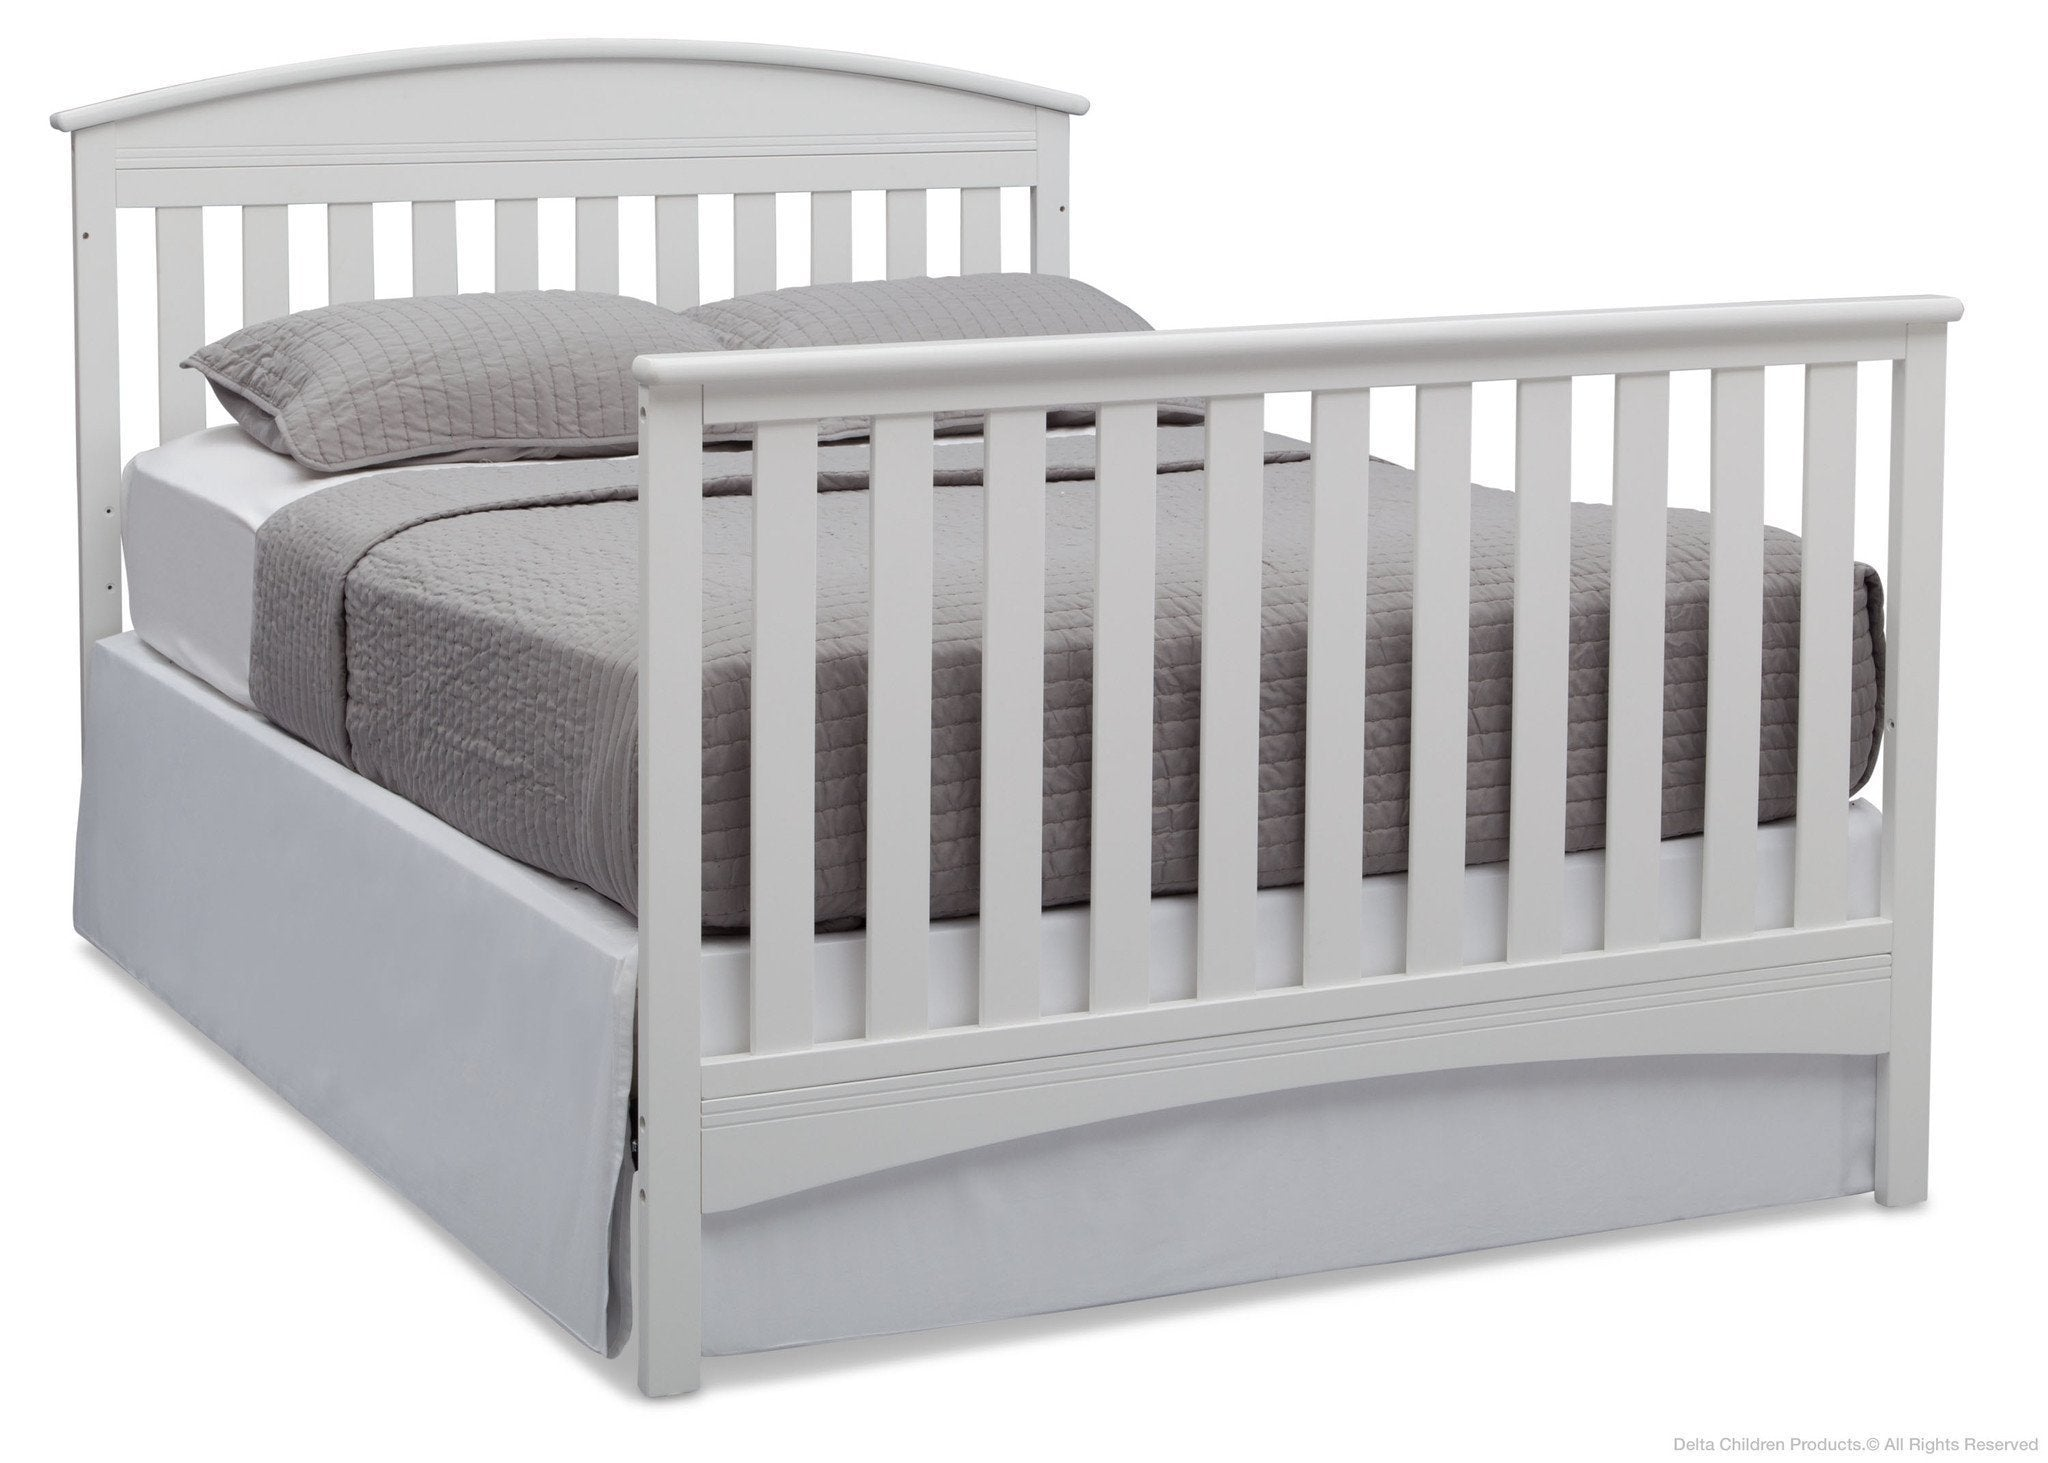 Delta Children Bianca (130) Abby 4-in-1 Crib Full Bed Conversion with Footboard b5b